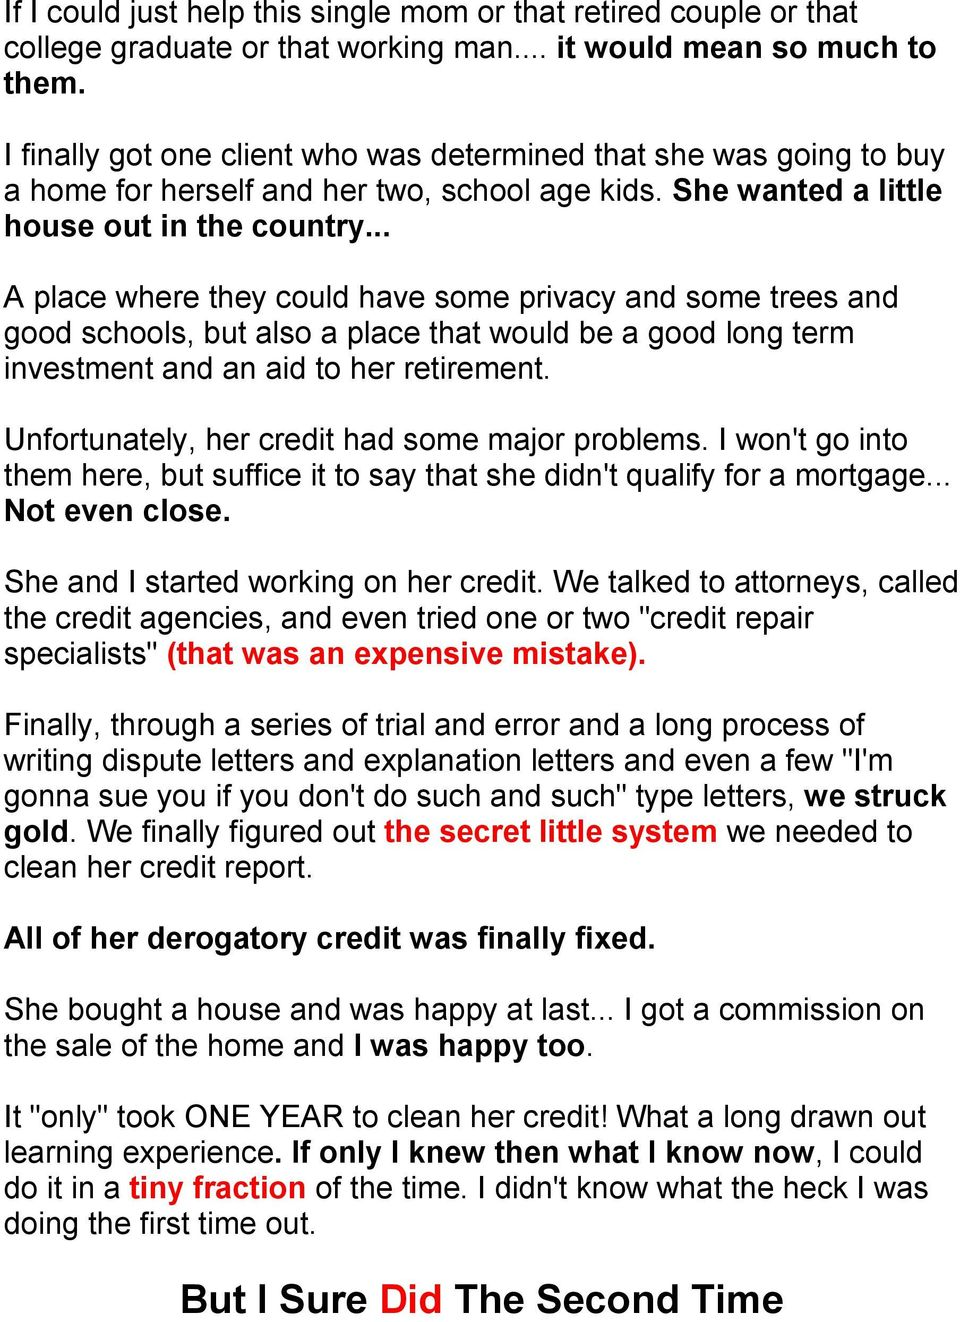 Sample Letter Of Explanation For Derogatory Credit For Mortgage from docplayer.net